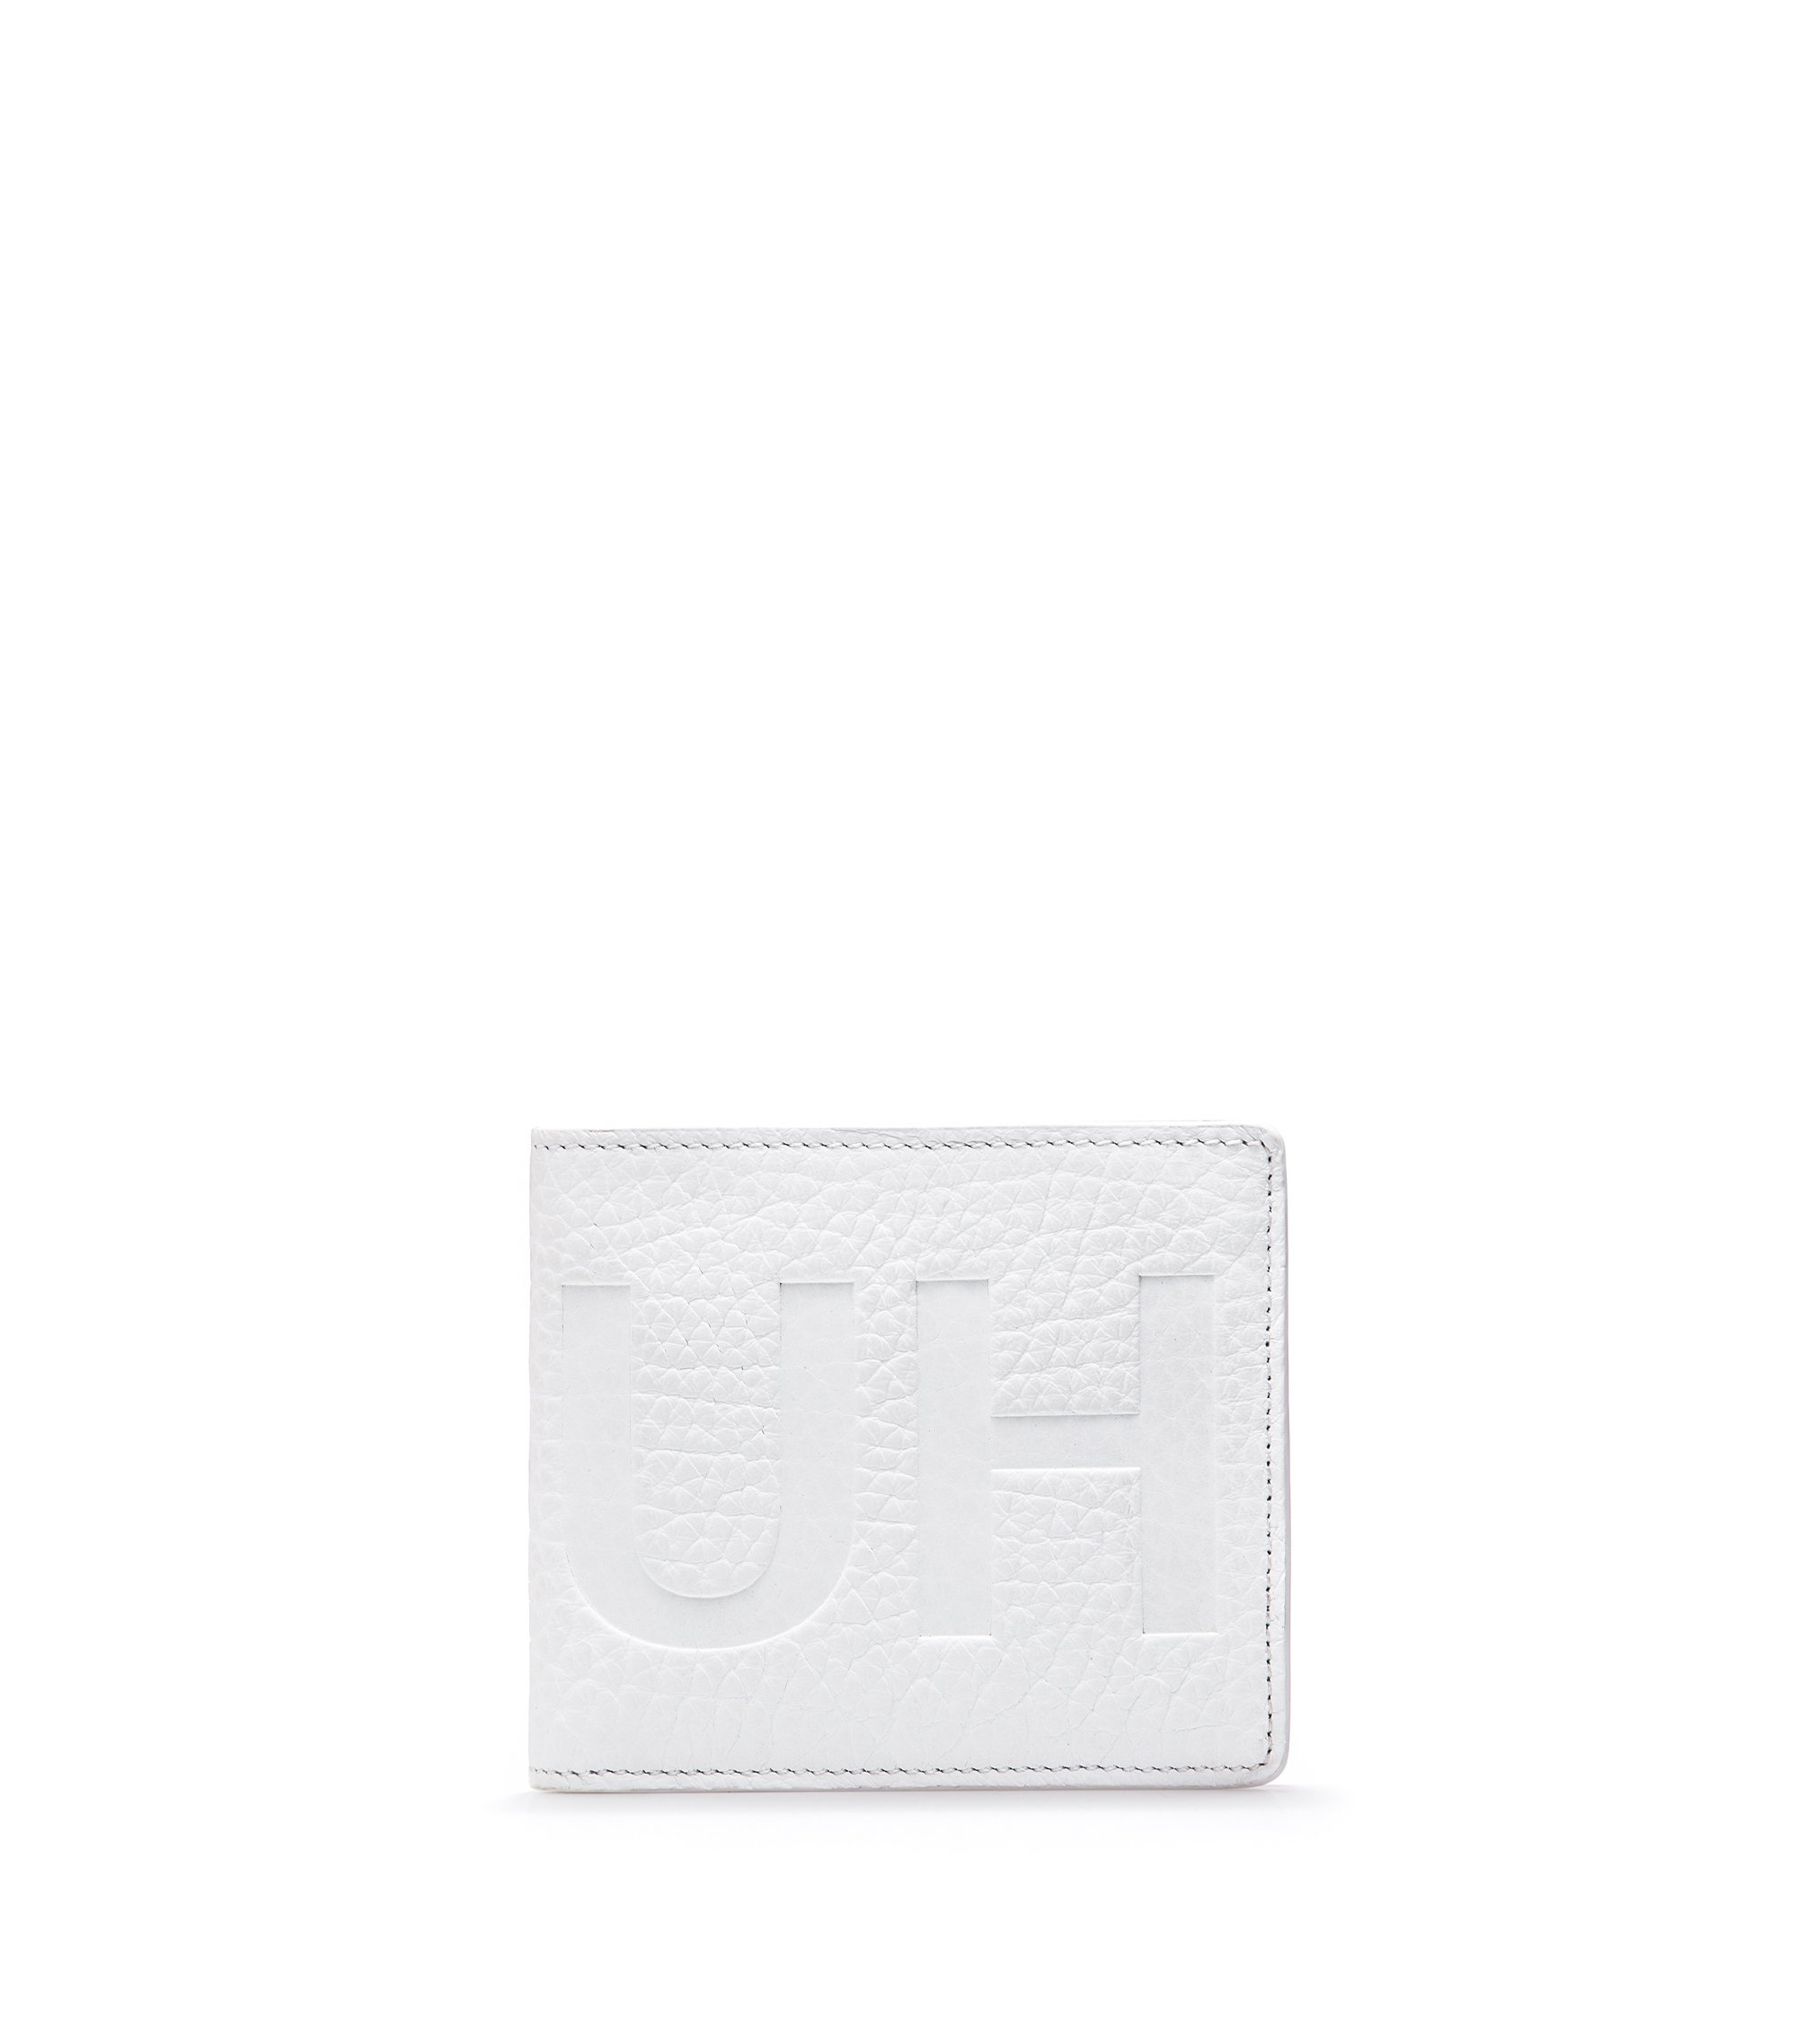 Cartera plegable en piel con logo invertido, Blanco